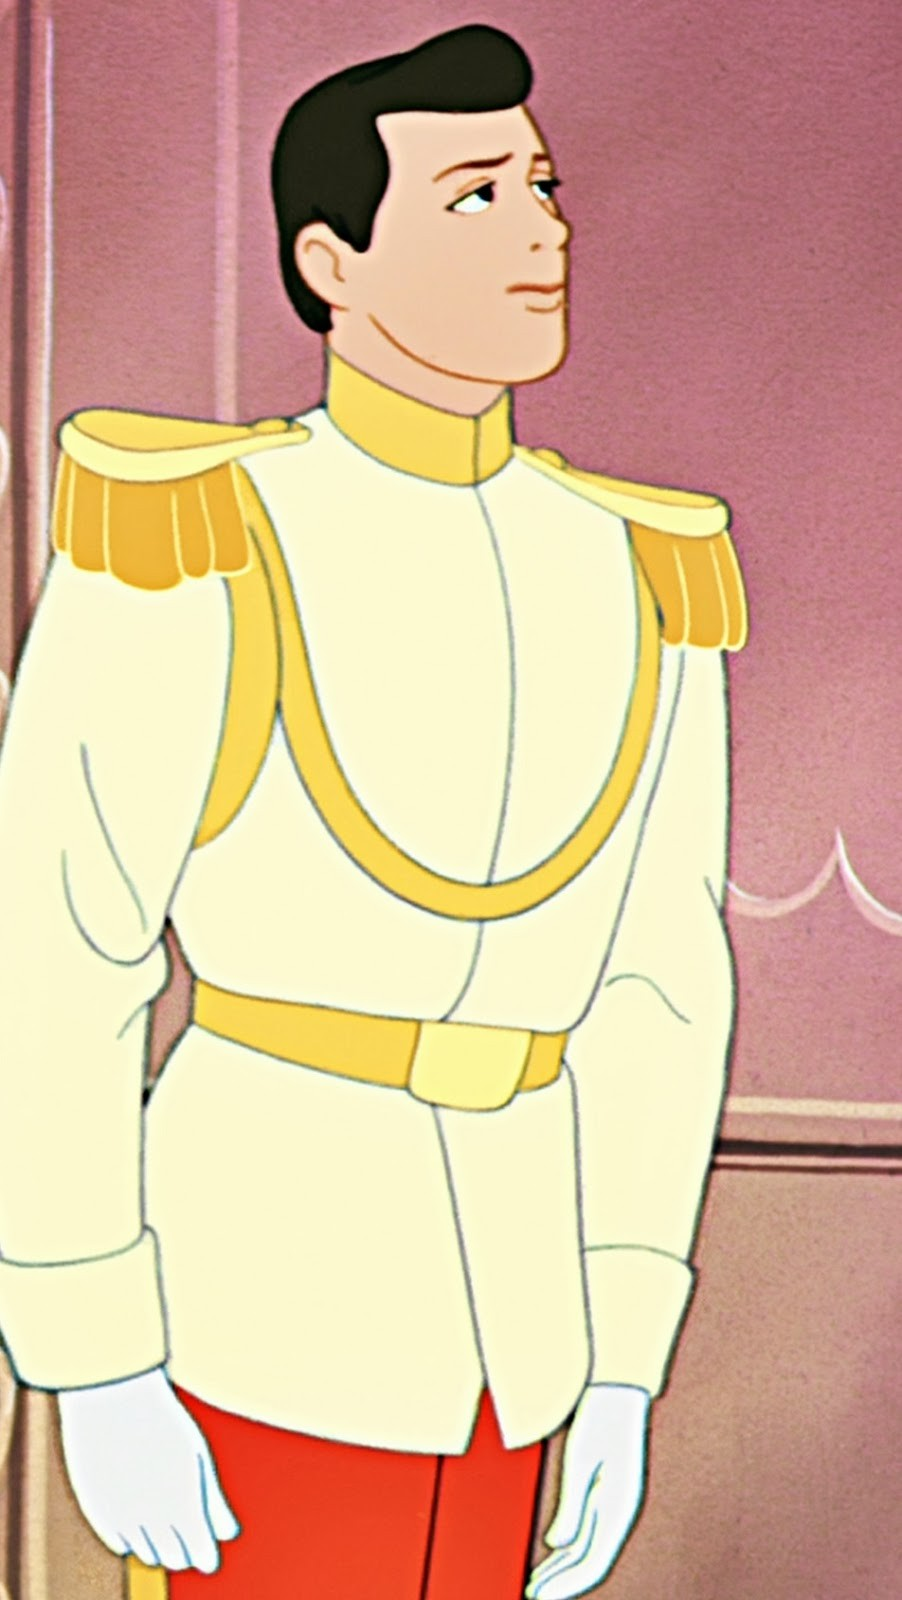 Prince Charming Coming To A Screen Near You In Live-Action! | Prince Charming